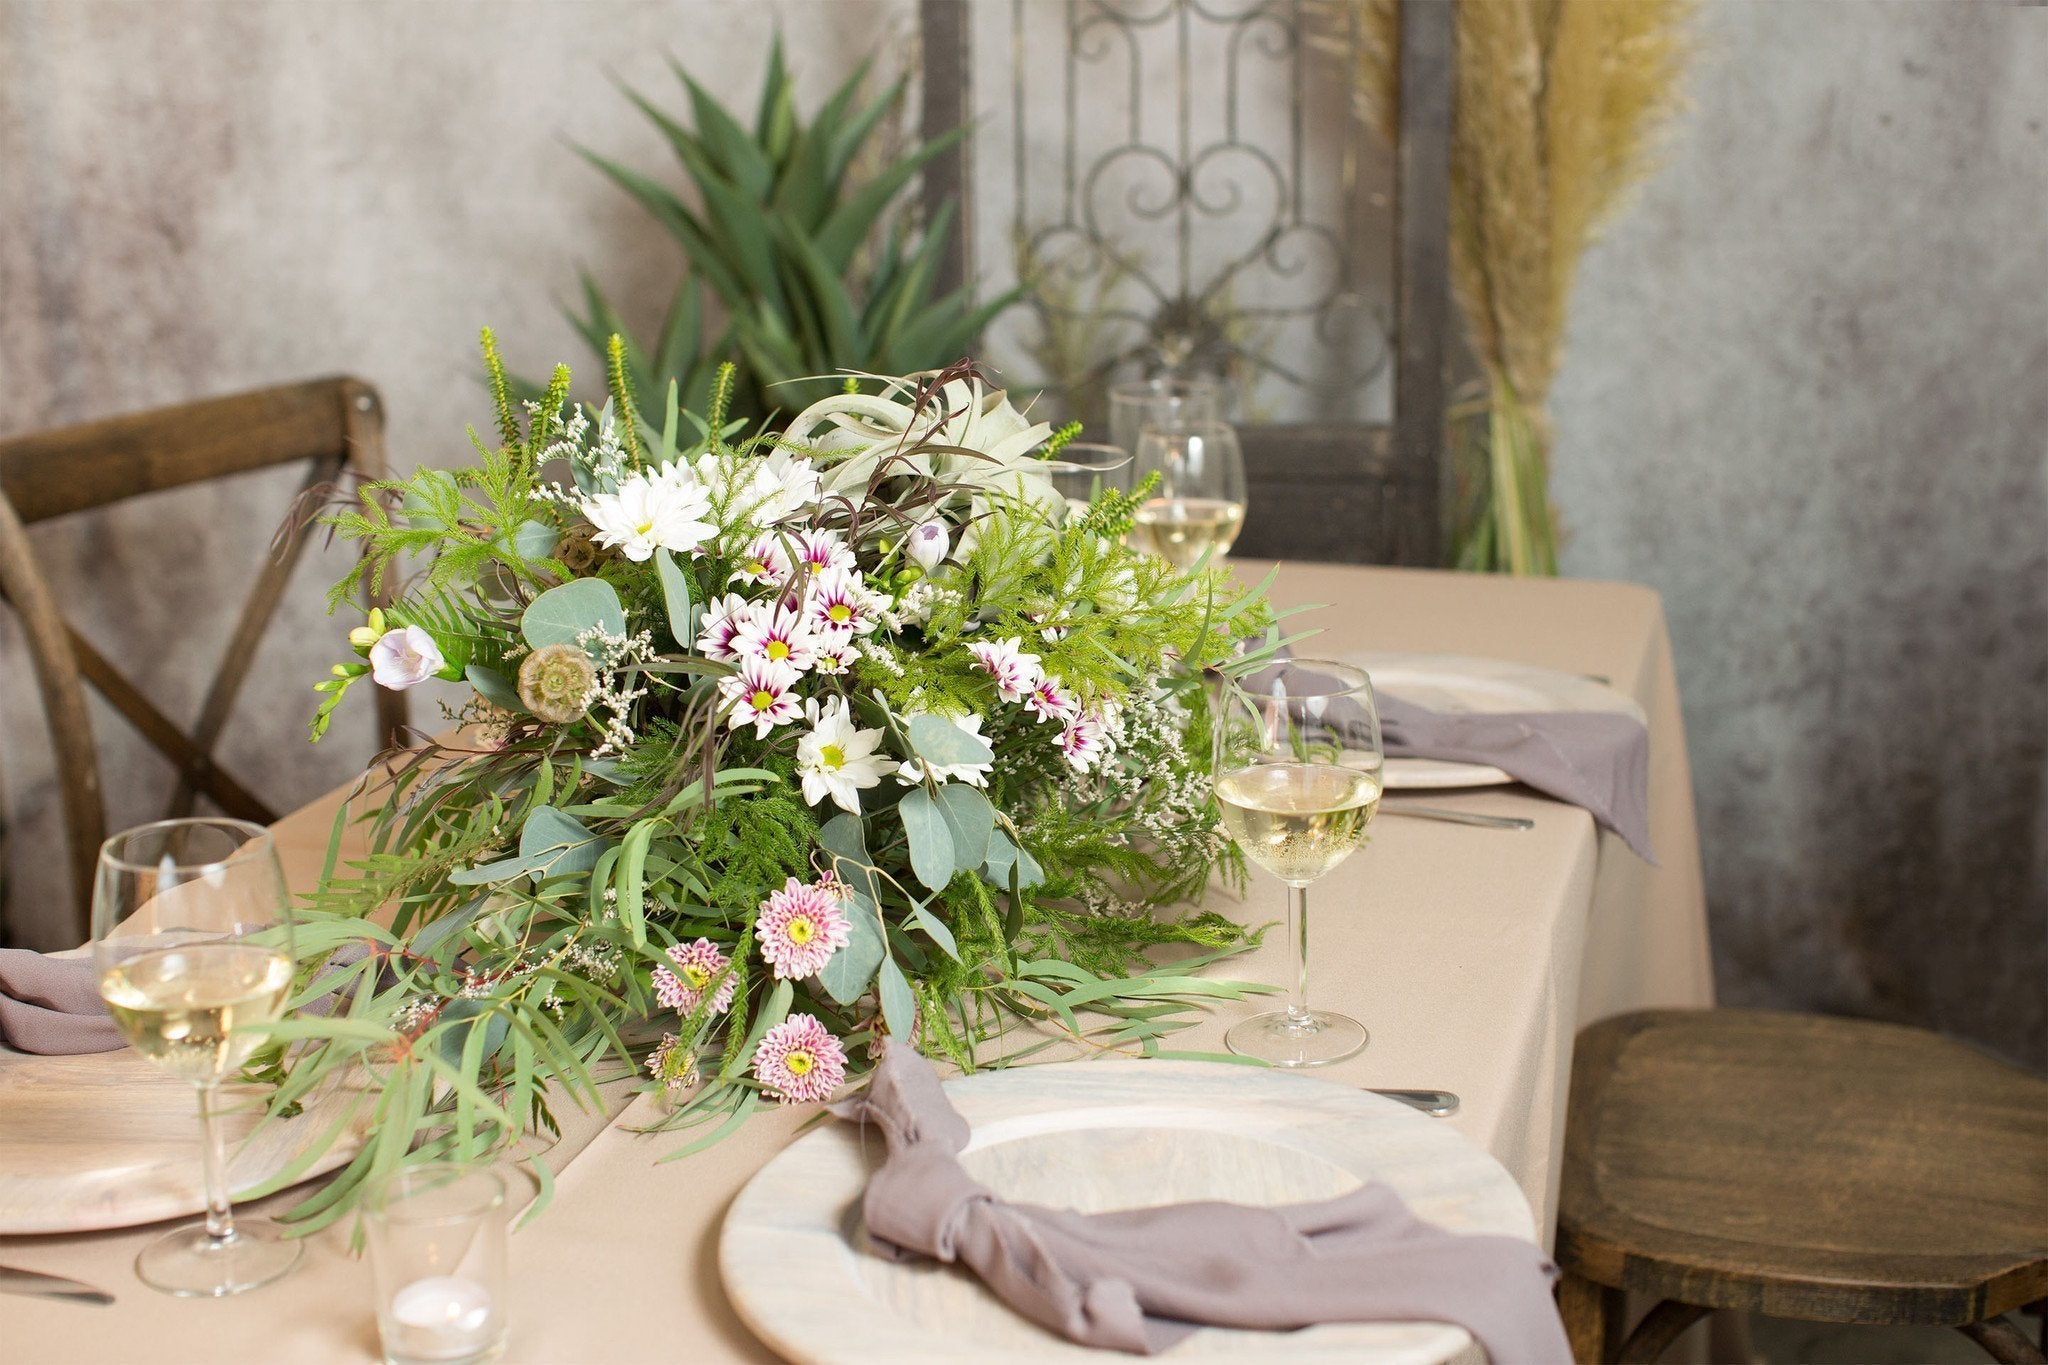 Archway and Sweetheart Table Arrangement